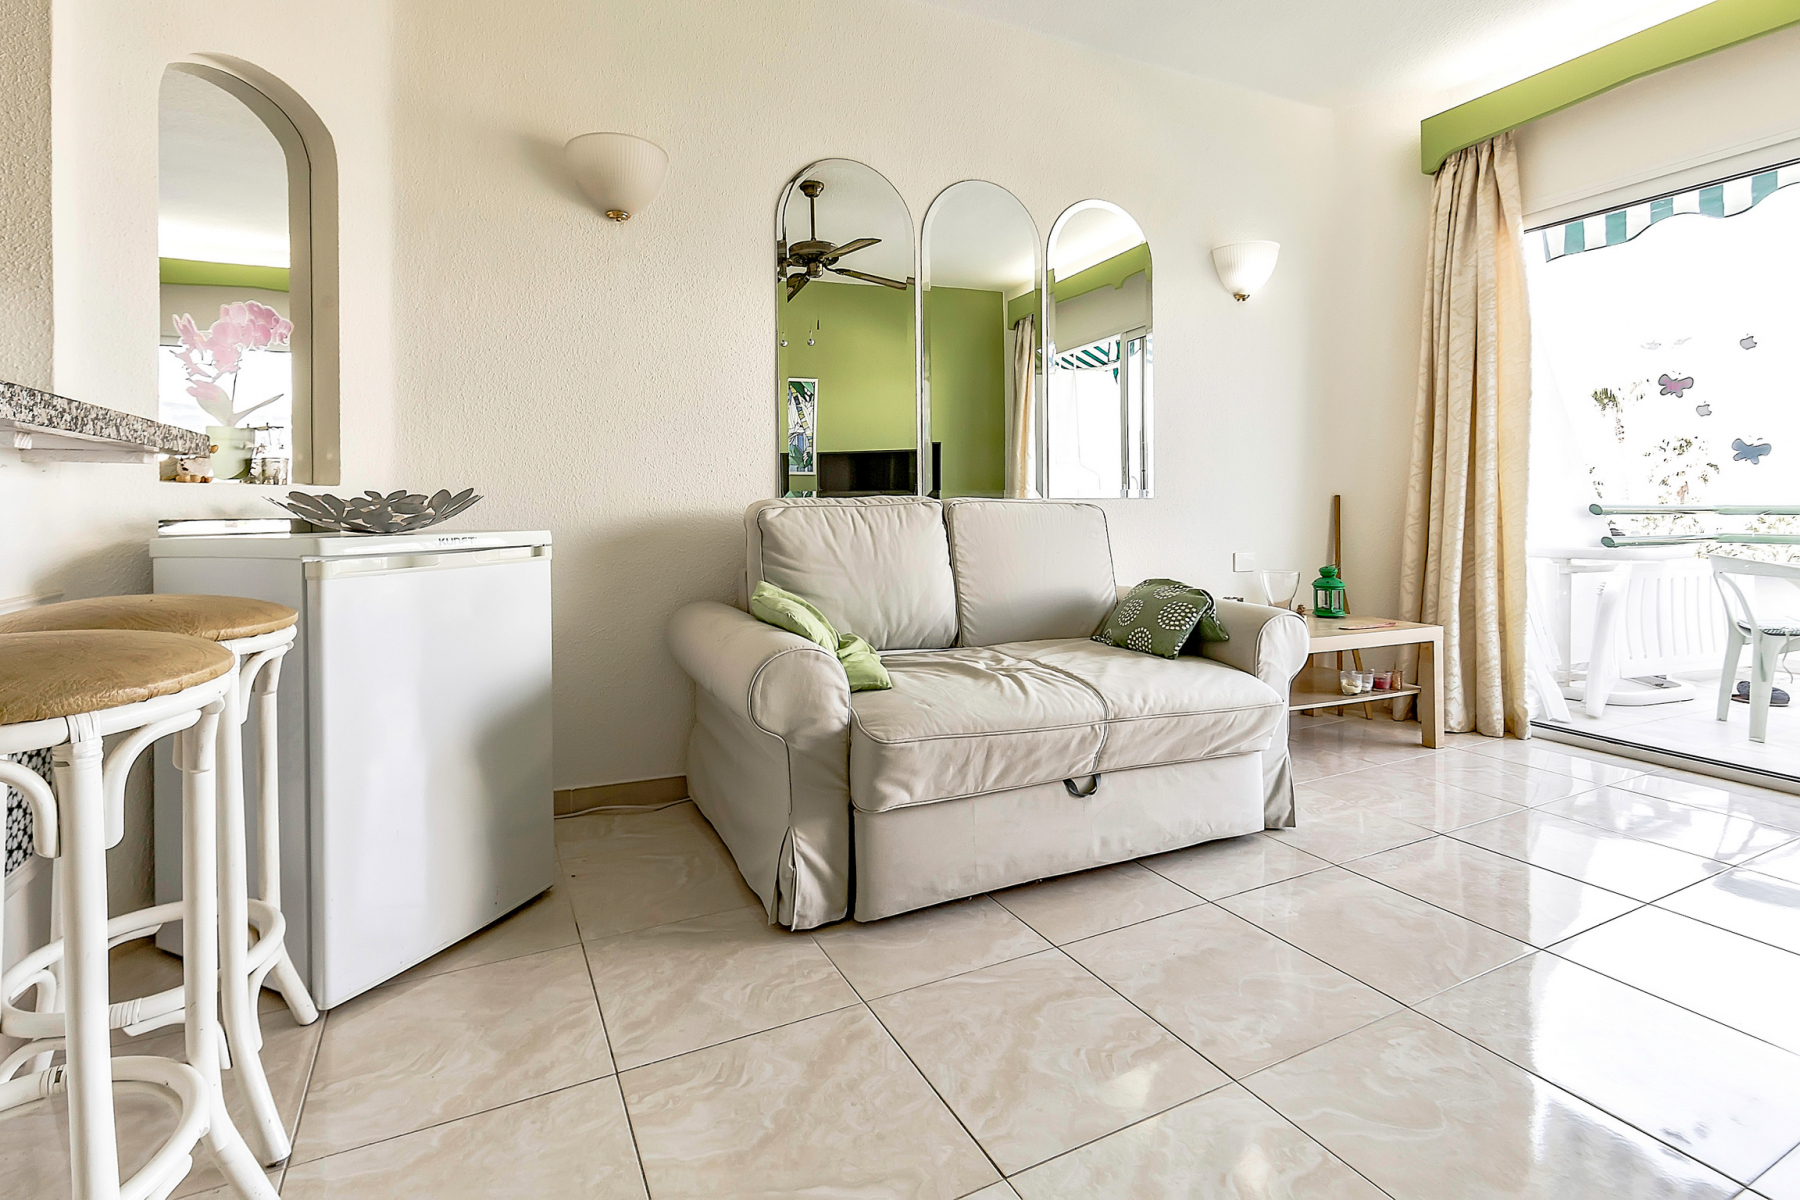 Properties for Sale in Tenerife, Canary Islands, Spain | SylkWayStar Real Estate. Lovely 1 Bedroom Apartment - Altamira. Image-25874